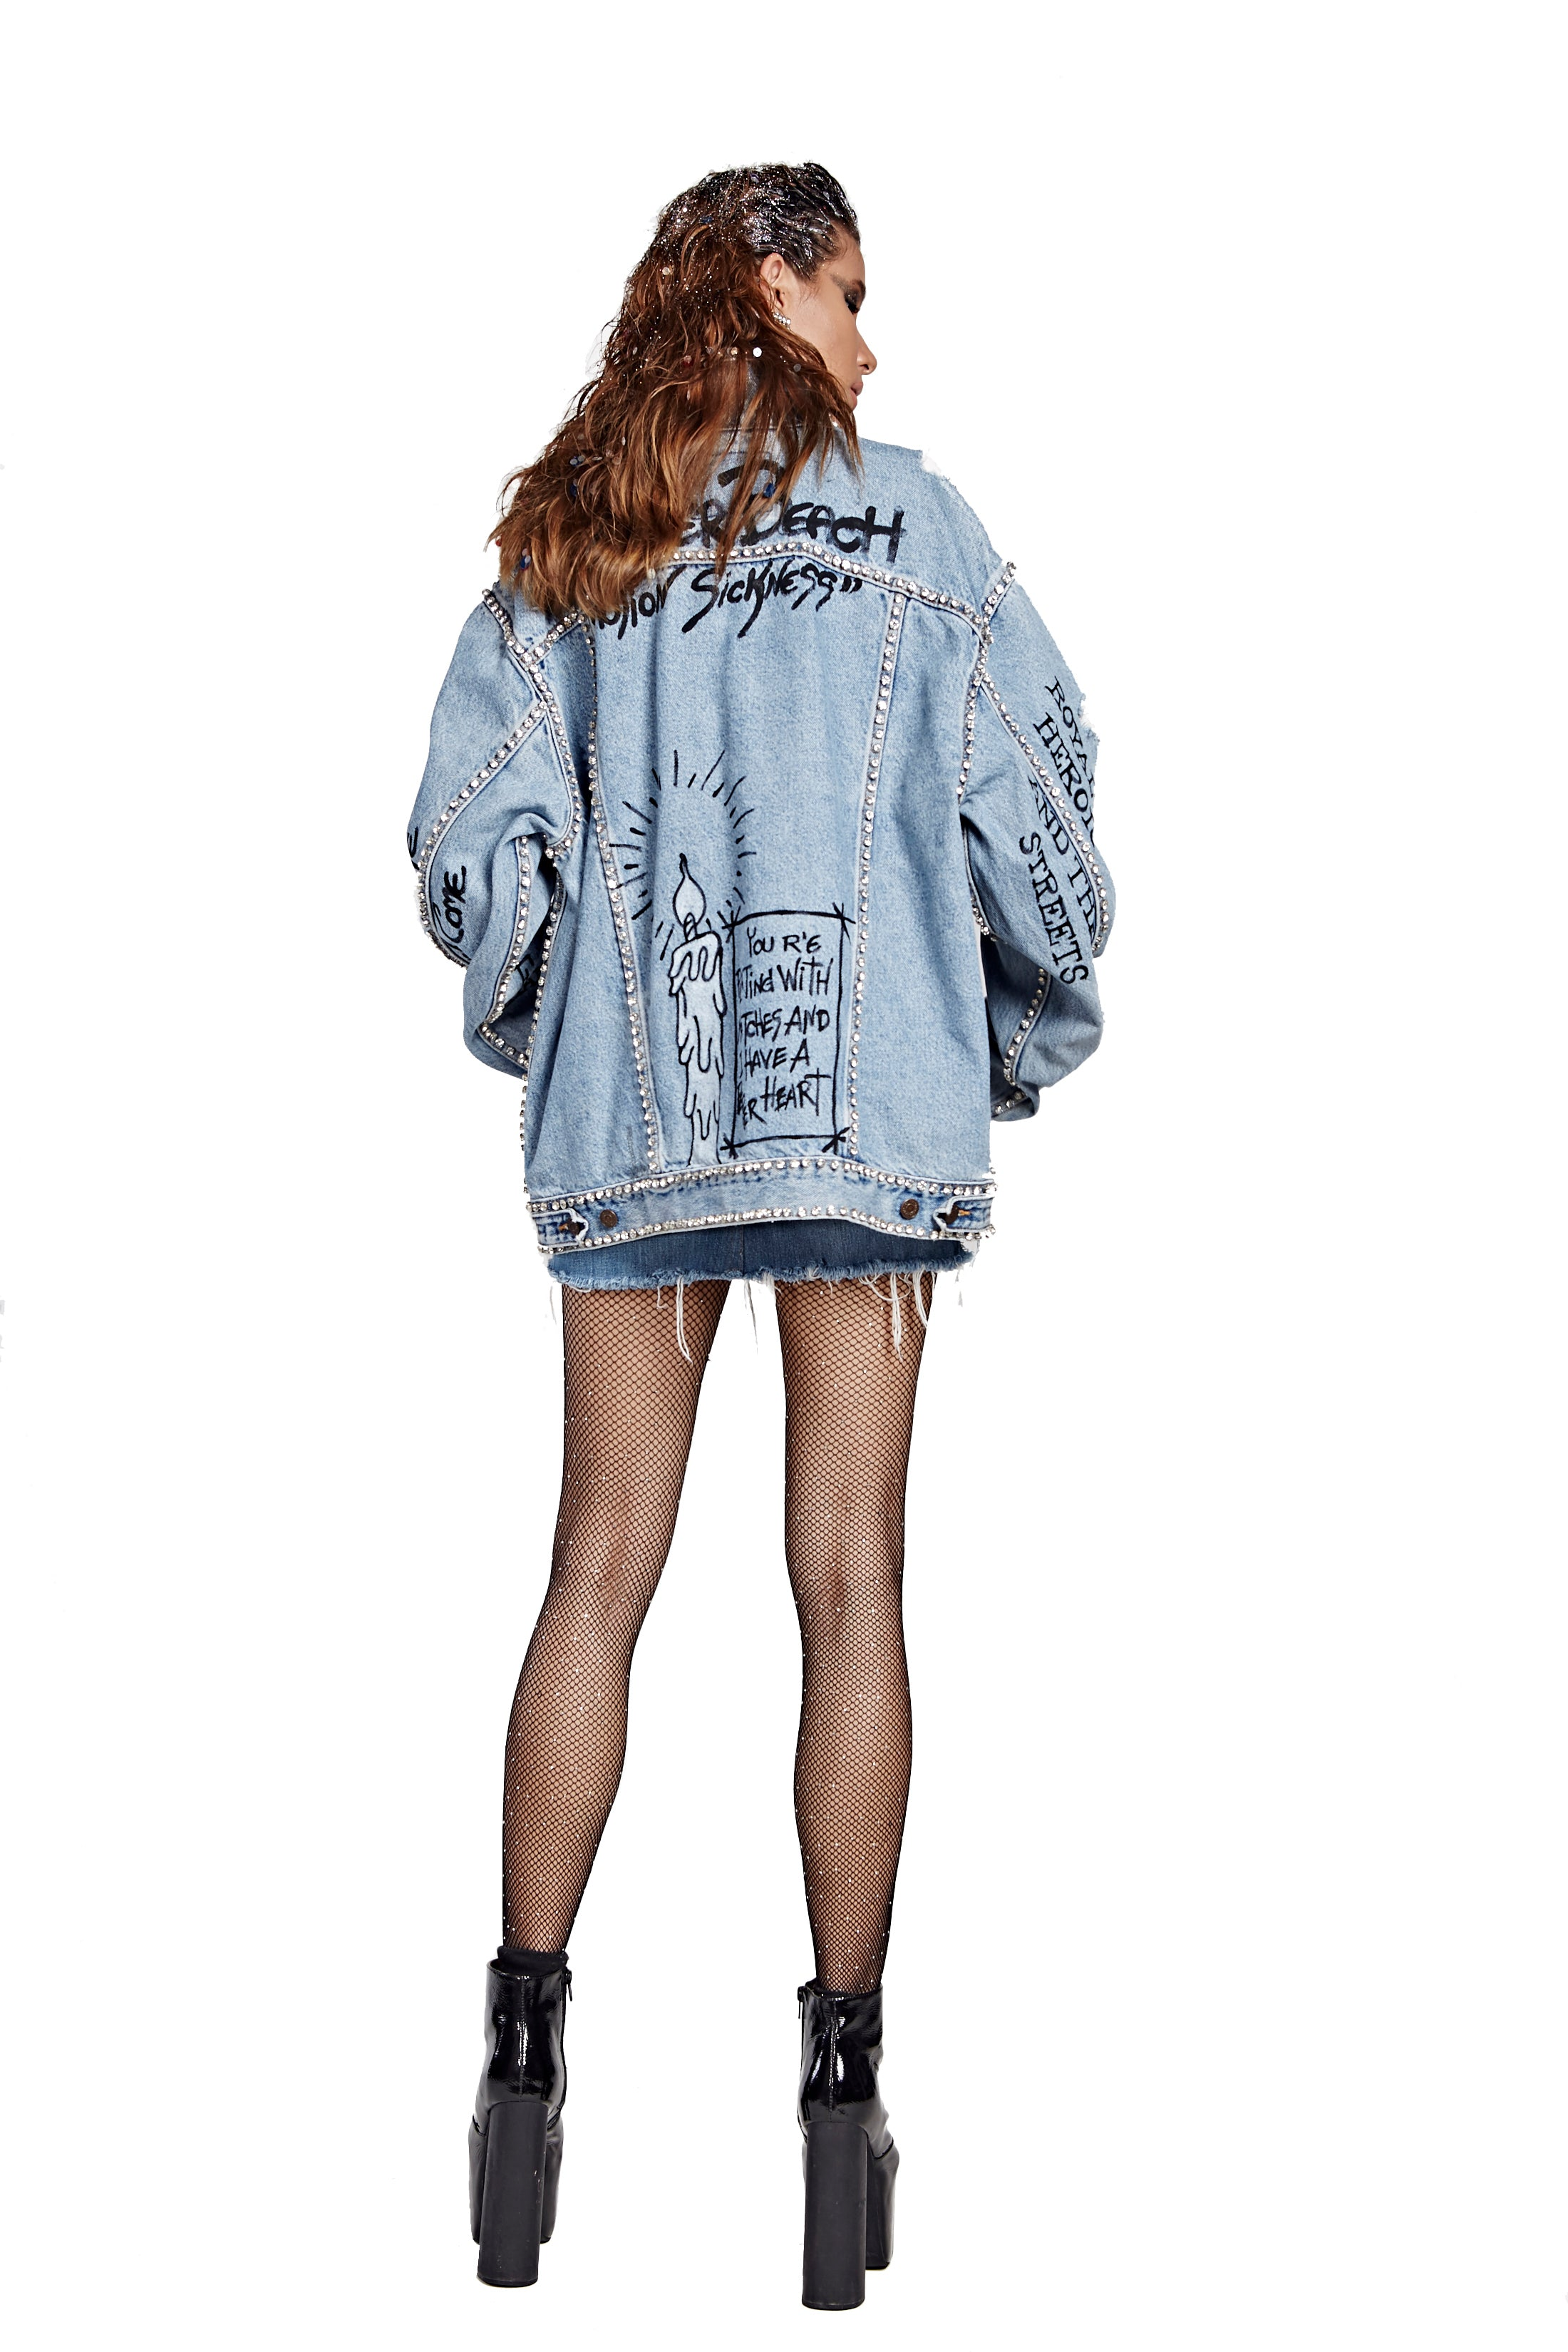 Diamond Denim Jacket - I LOVE DIY by Panida